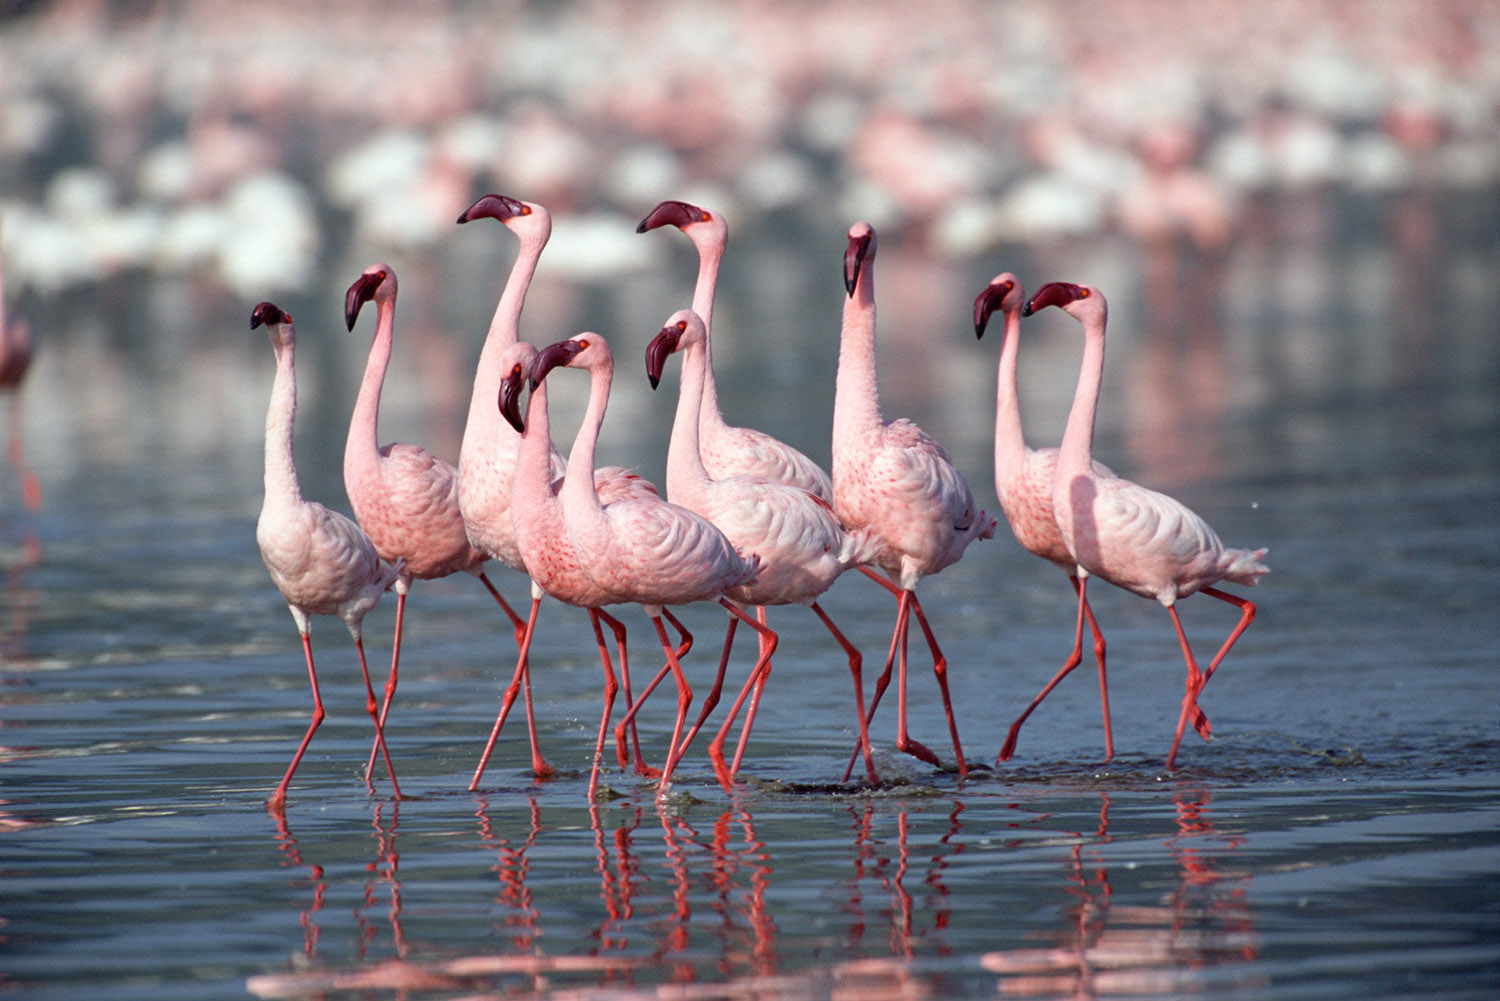 Lesser flamingos in courtship display, Lake Nakuru National Park, Kenya